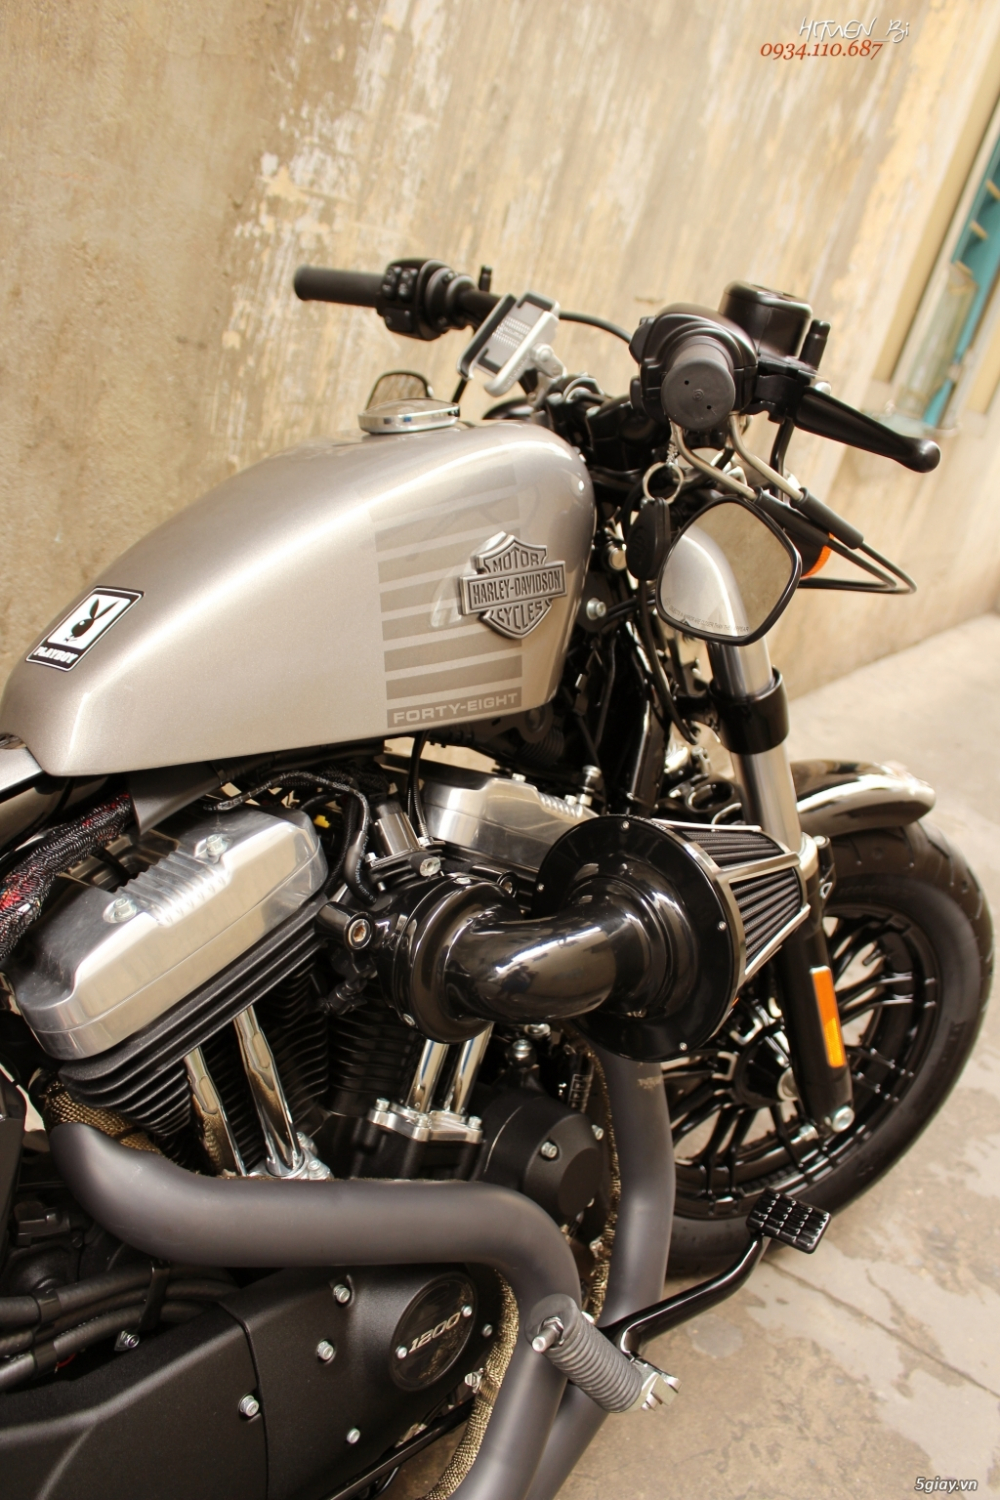 ___ Can Ban ___HARLEY DAVIDSON Fortyeight 1200cc ABS 2018___ - 6